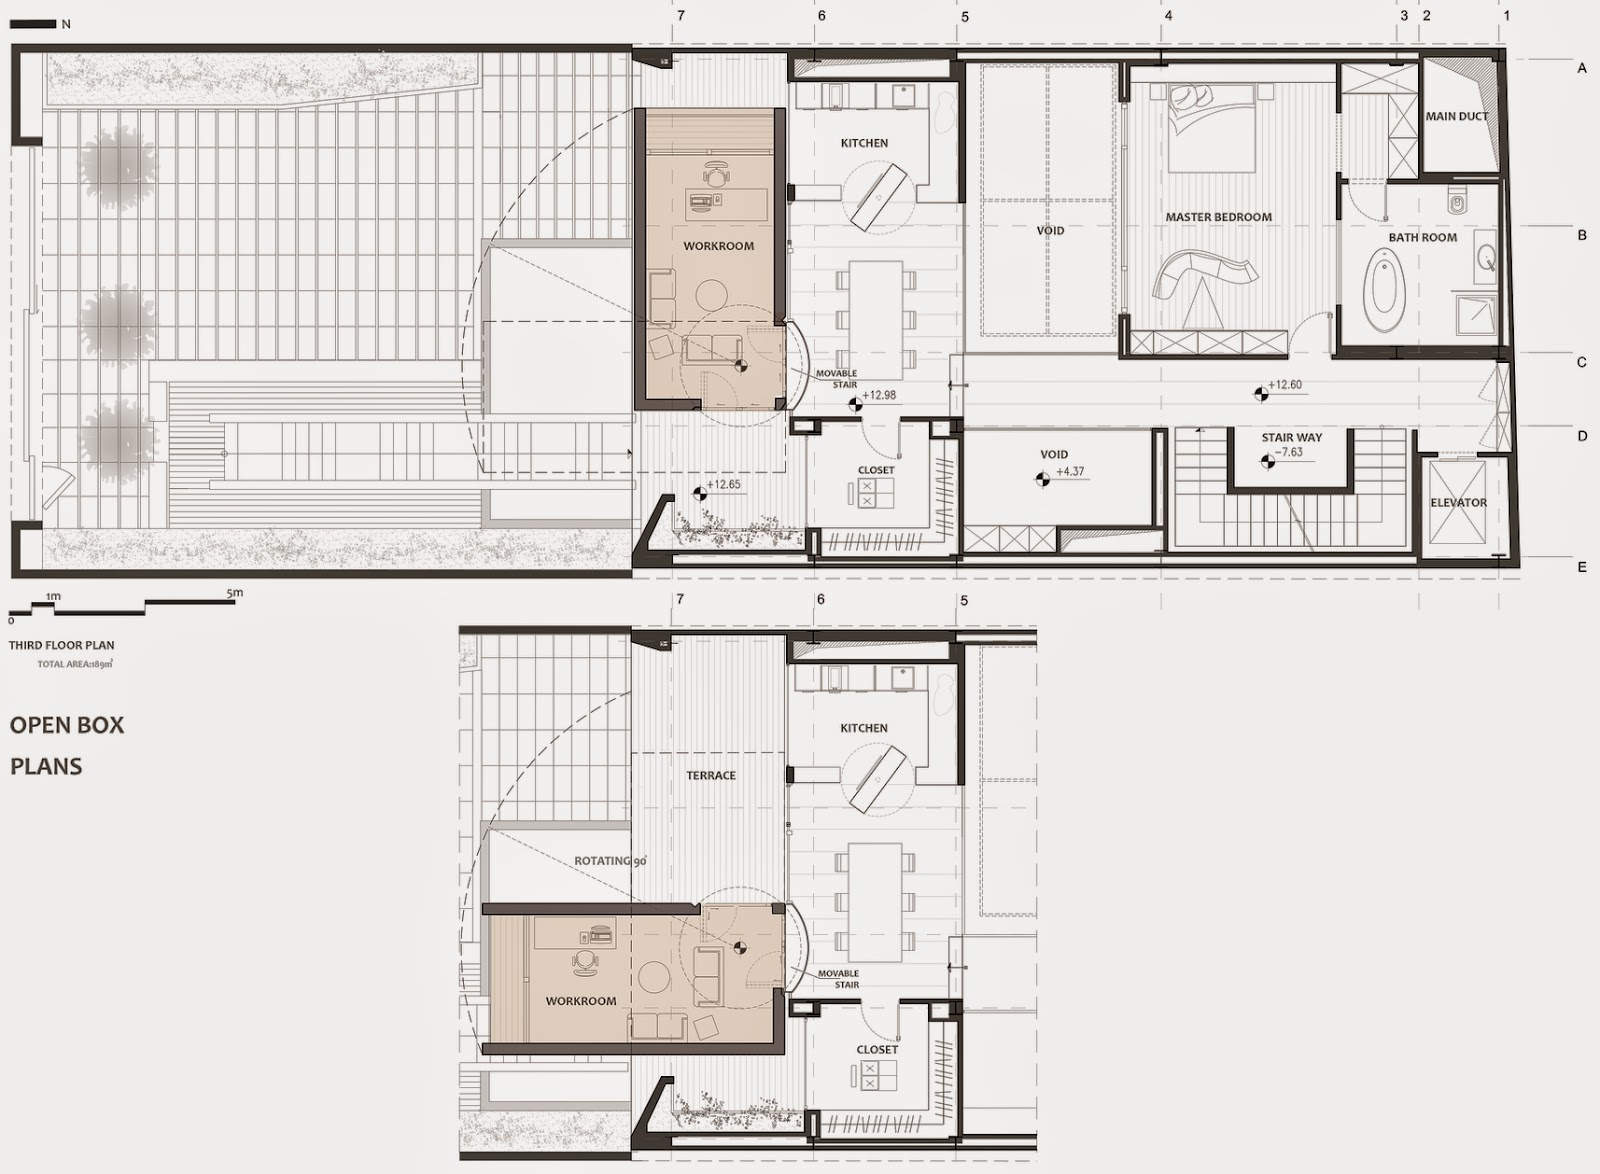 11-Plans-Third-Floor-Plan-Section-Nextoffice-Sharifi-Ha-House-Revolving-Rooms-Architecture-www-designstack-co